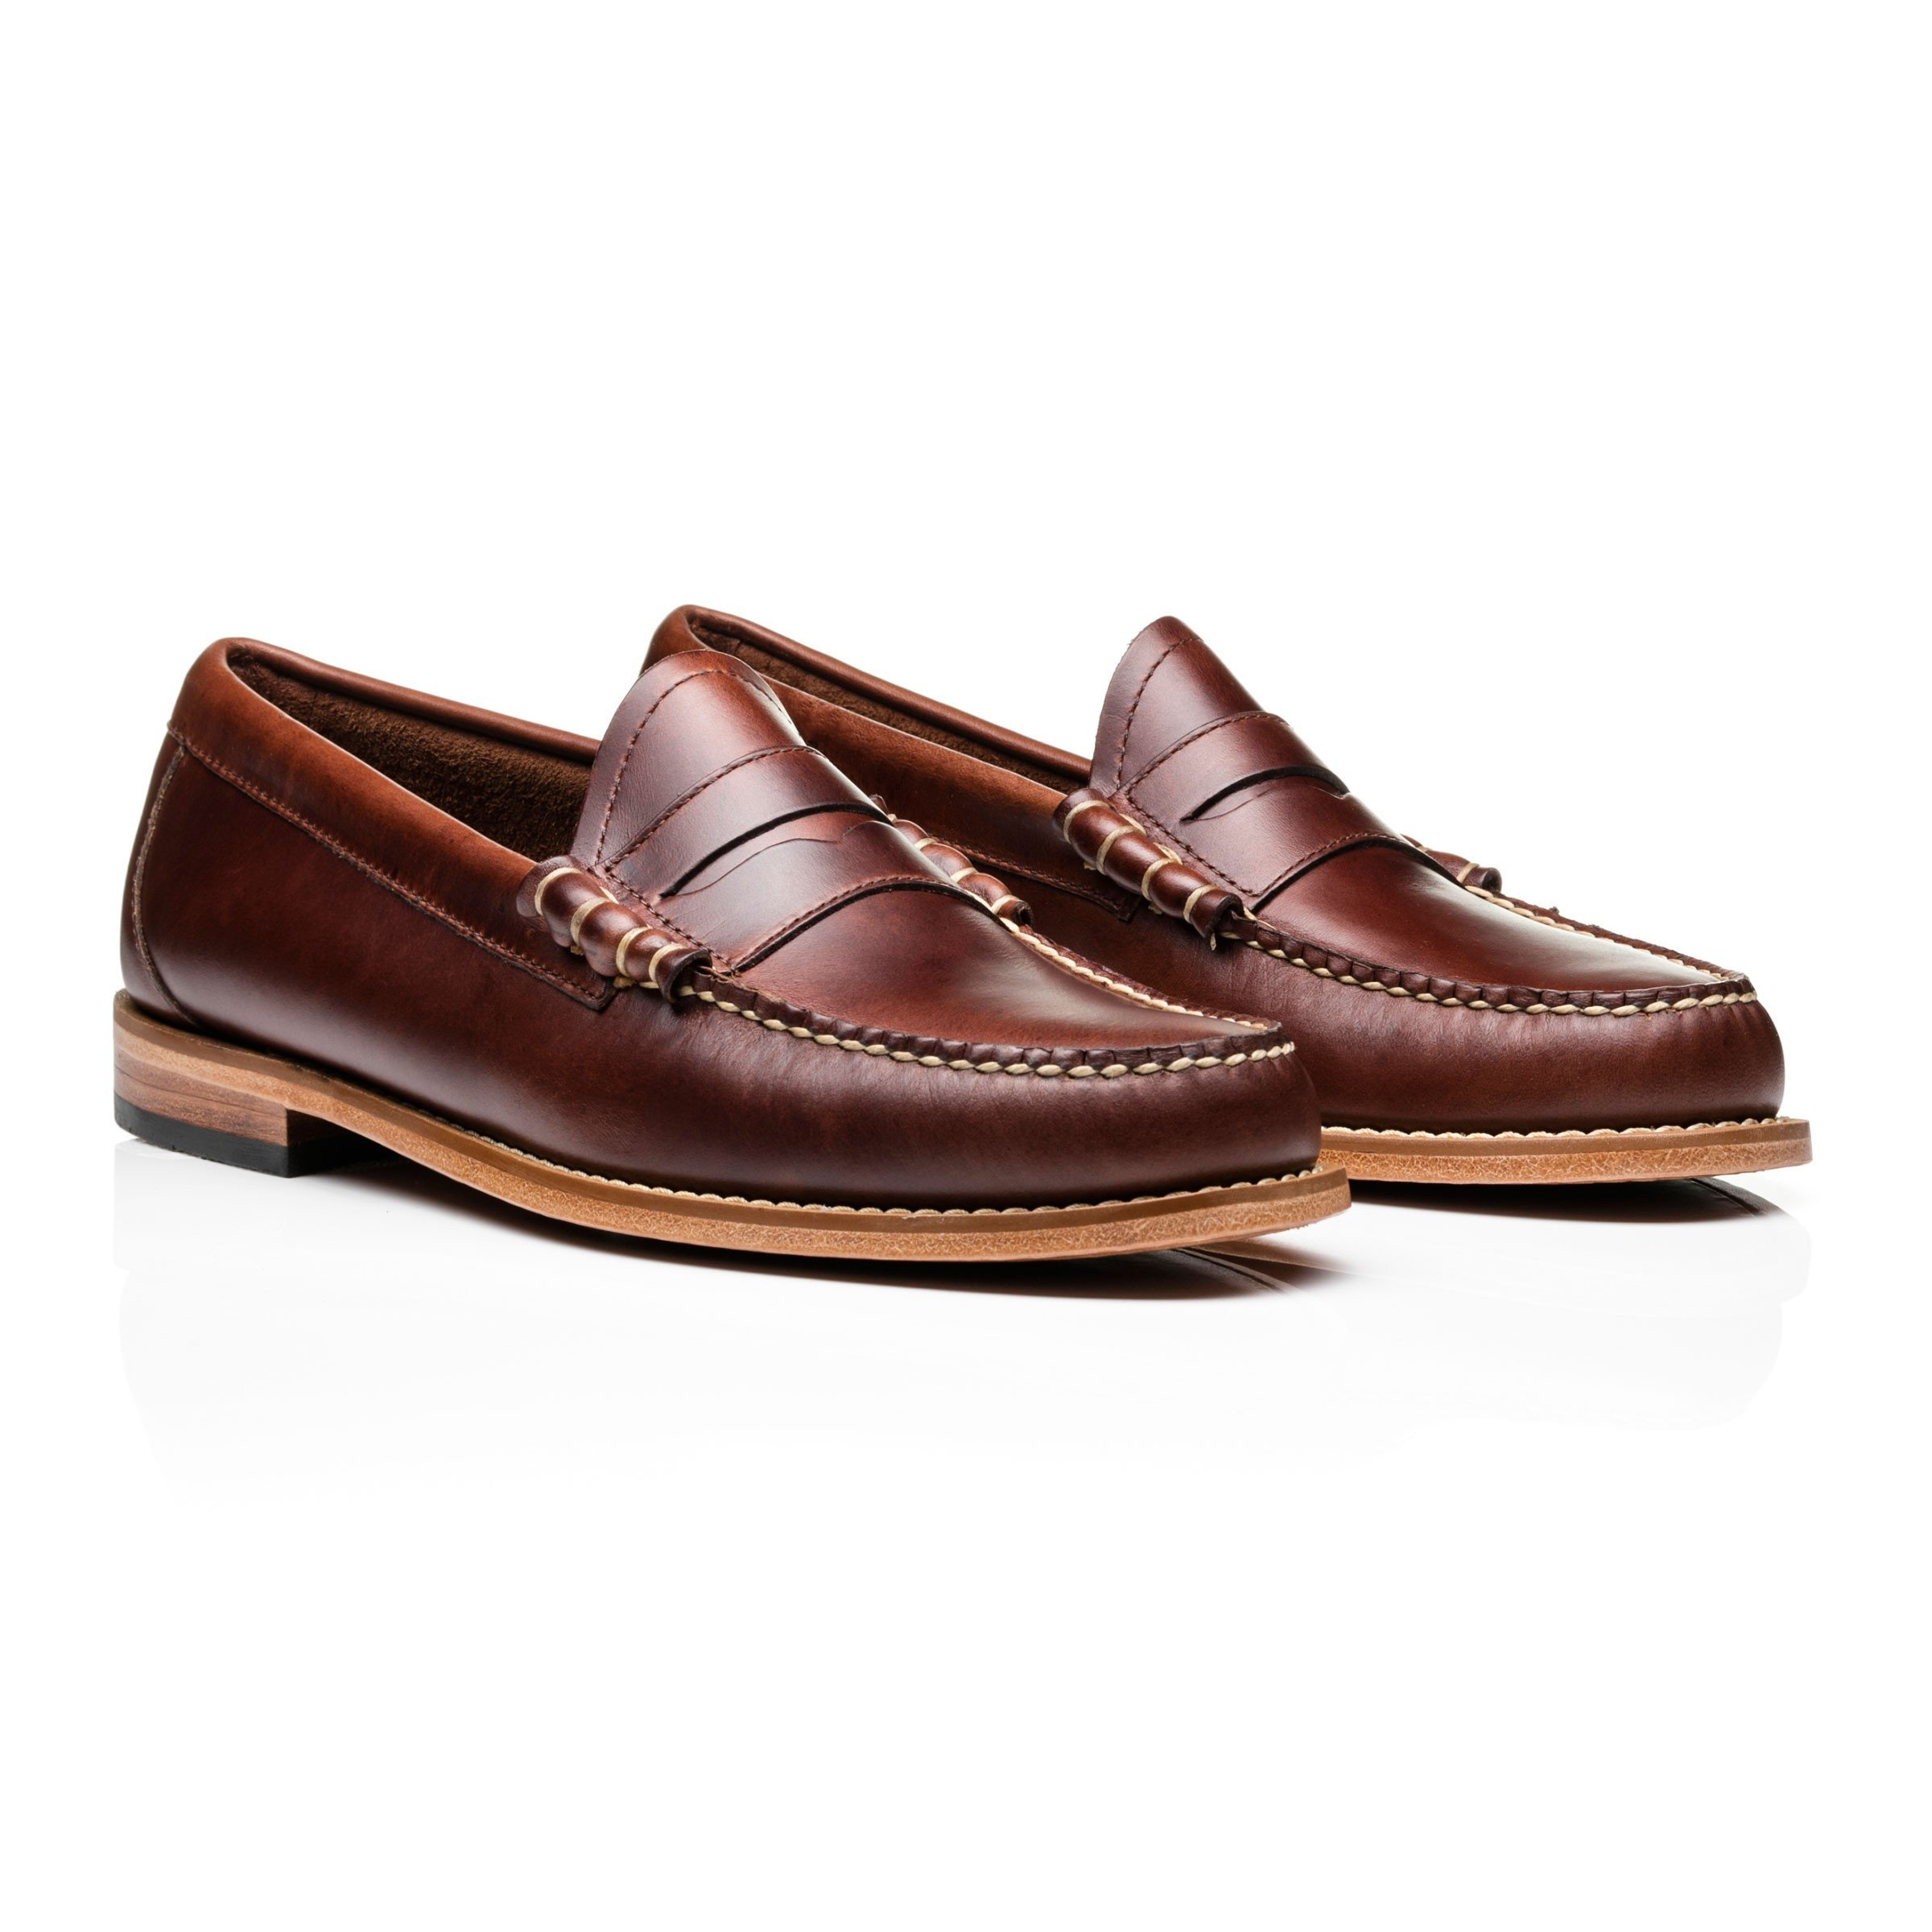 Up Larson Loafers Penny Weejuns TrouvaDark Brown Pull ZiOuPkXT